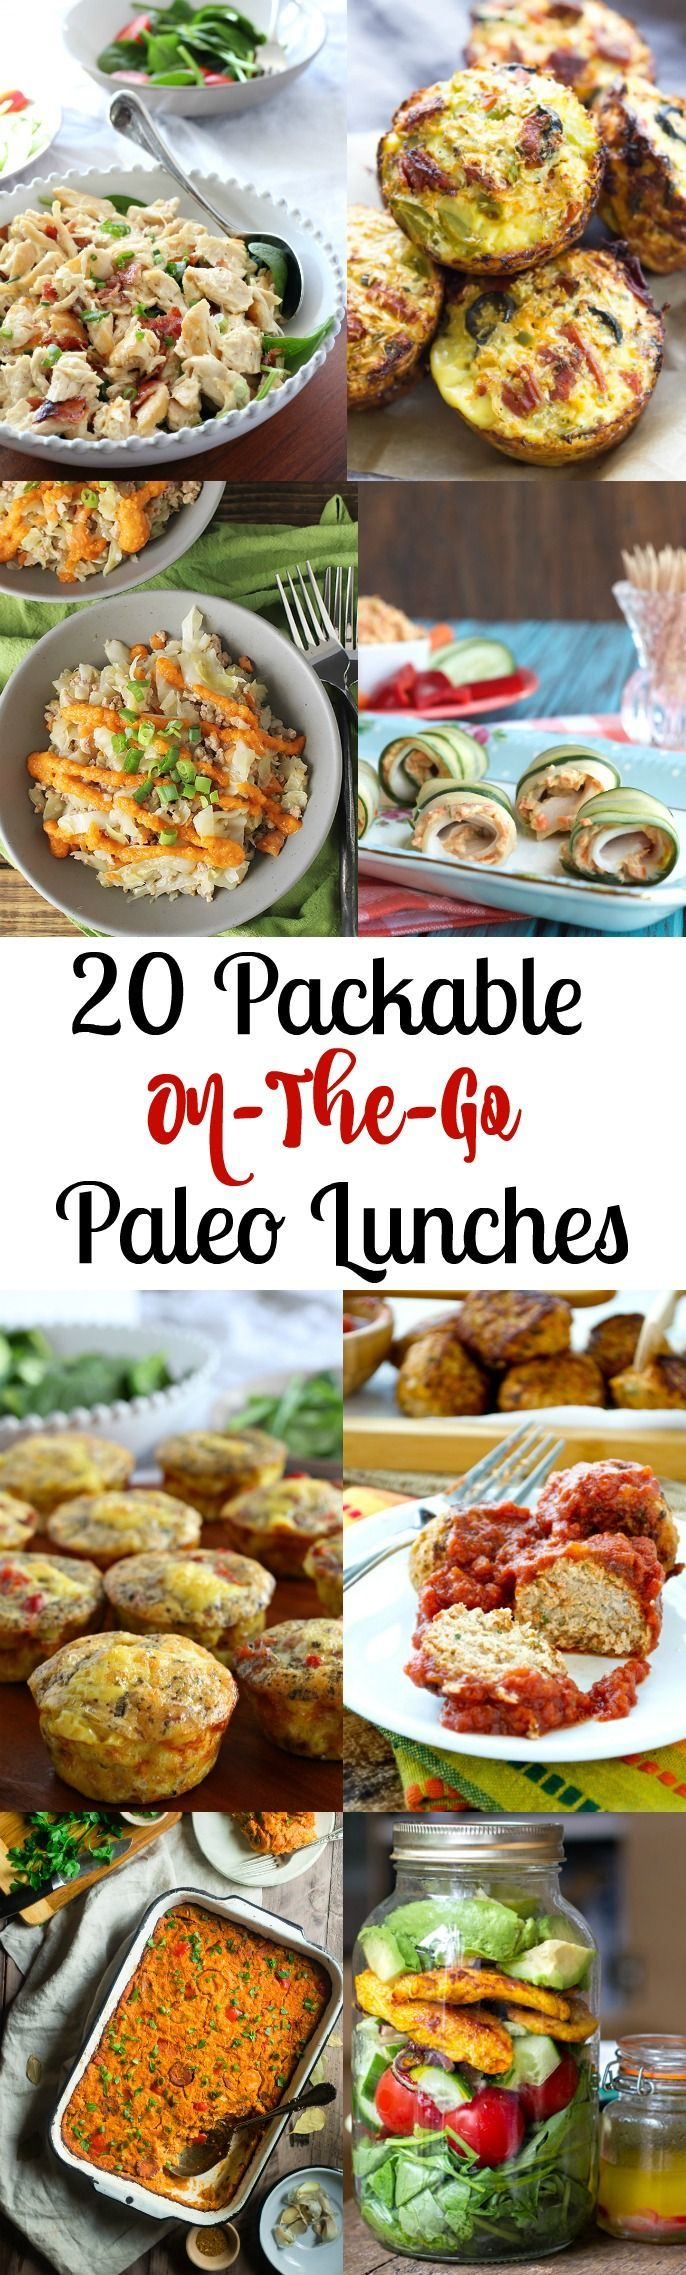 20 packable on-the-go Paleo Lunches for work or school plus what to pack your lunch in! http://www.my-paleo.com